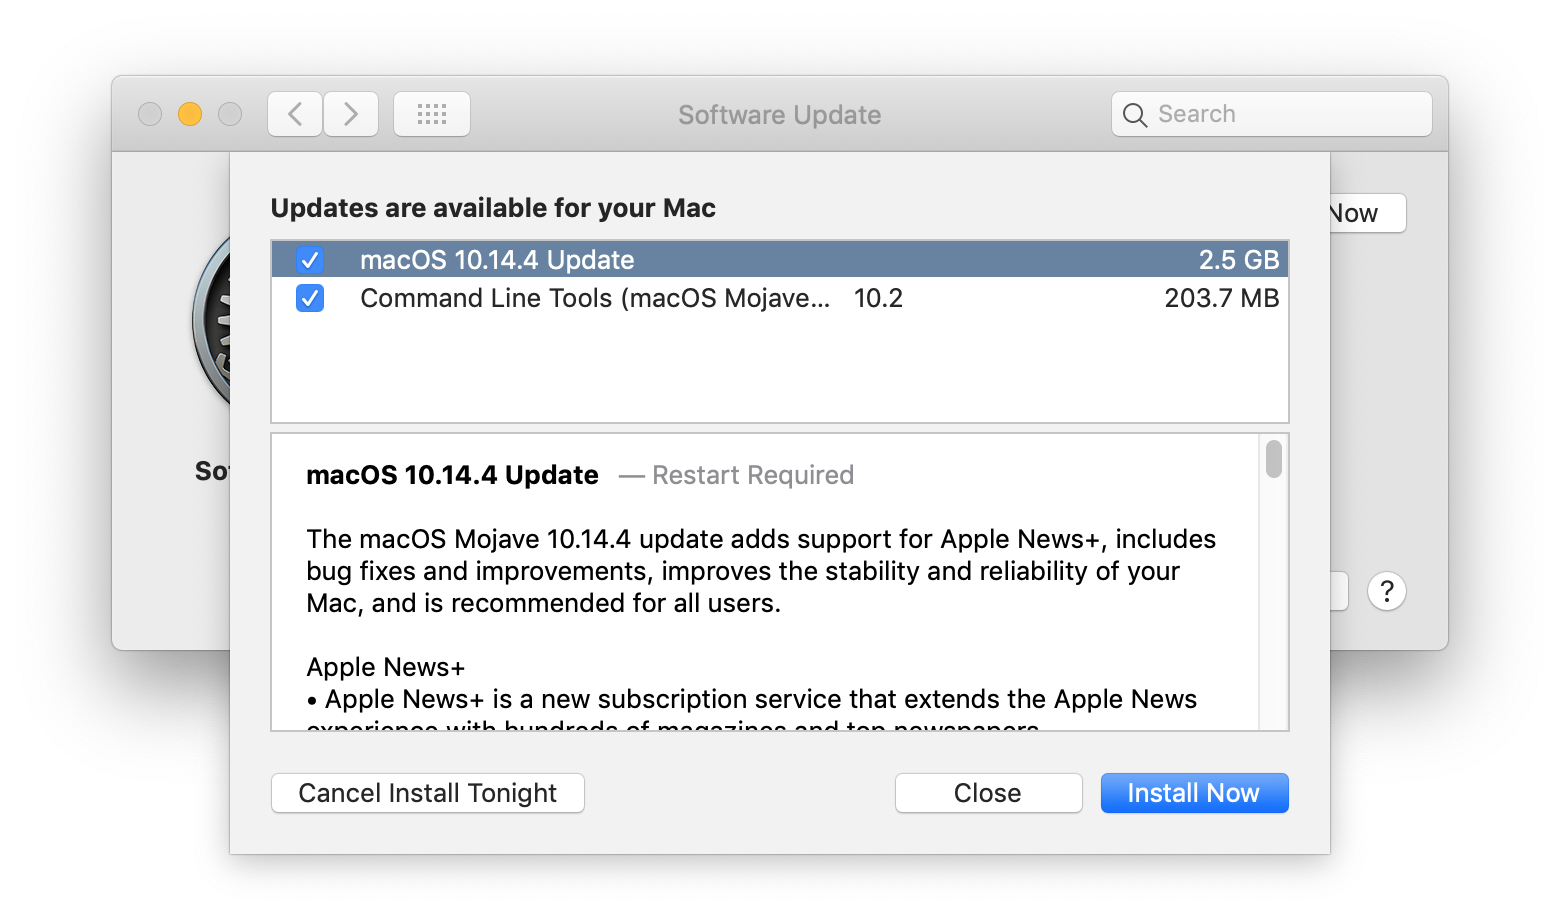 Screenshot of the software update release notes in System Preferences in MacOS 10.14.